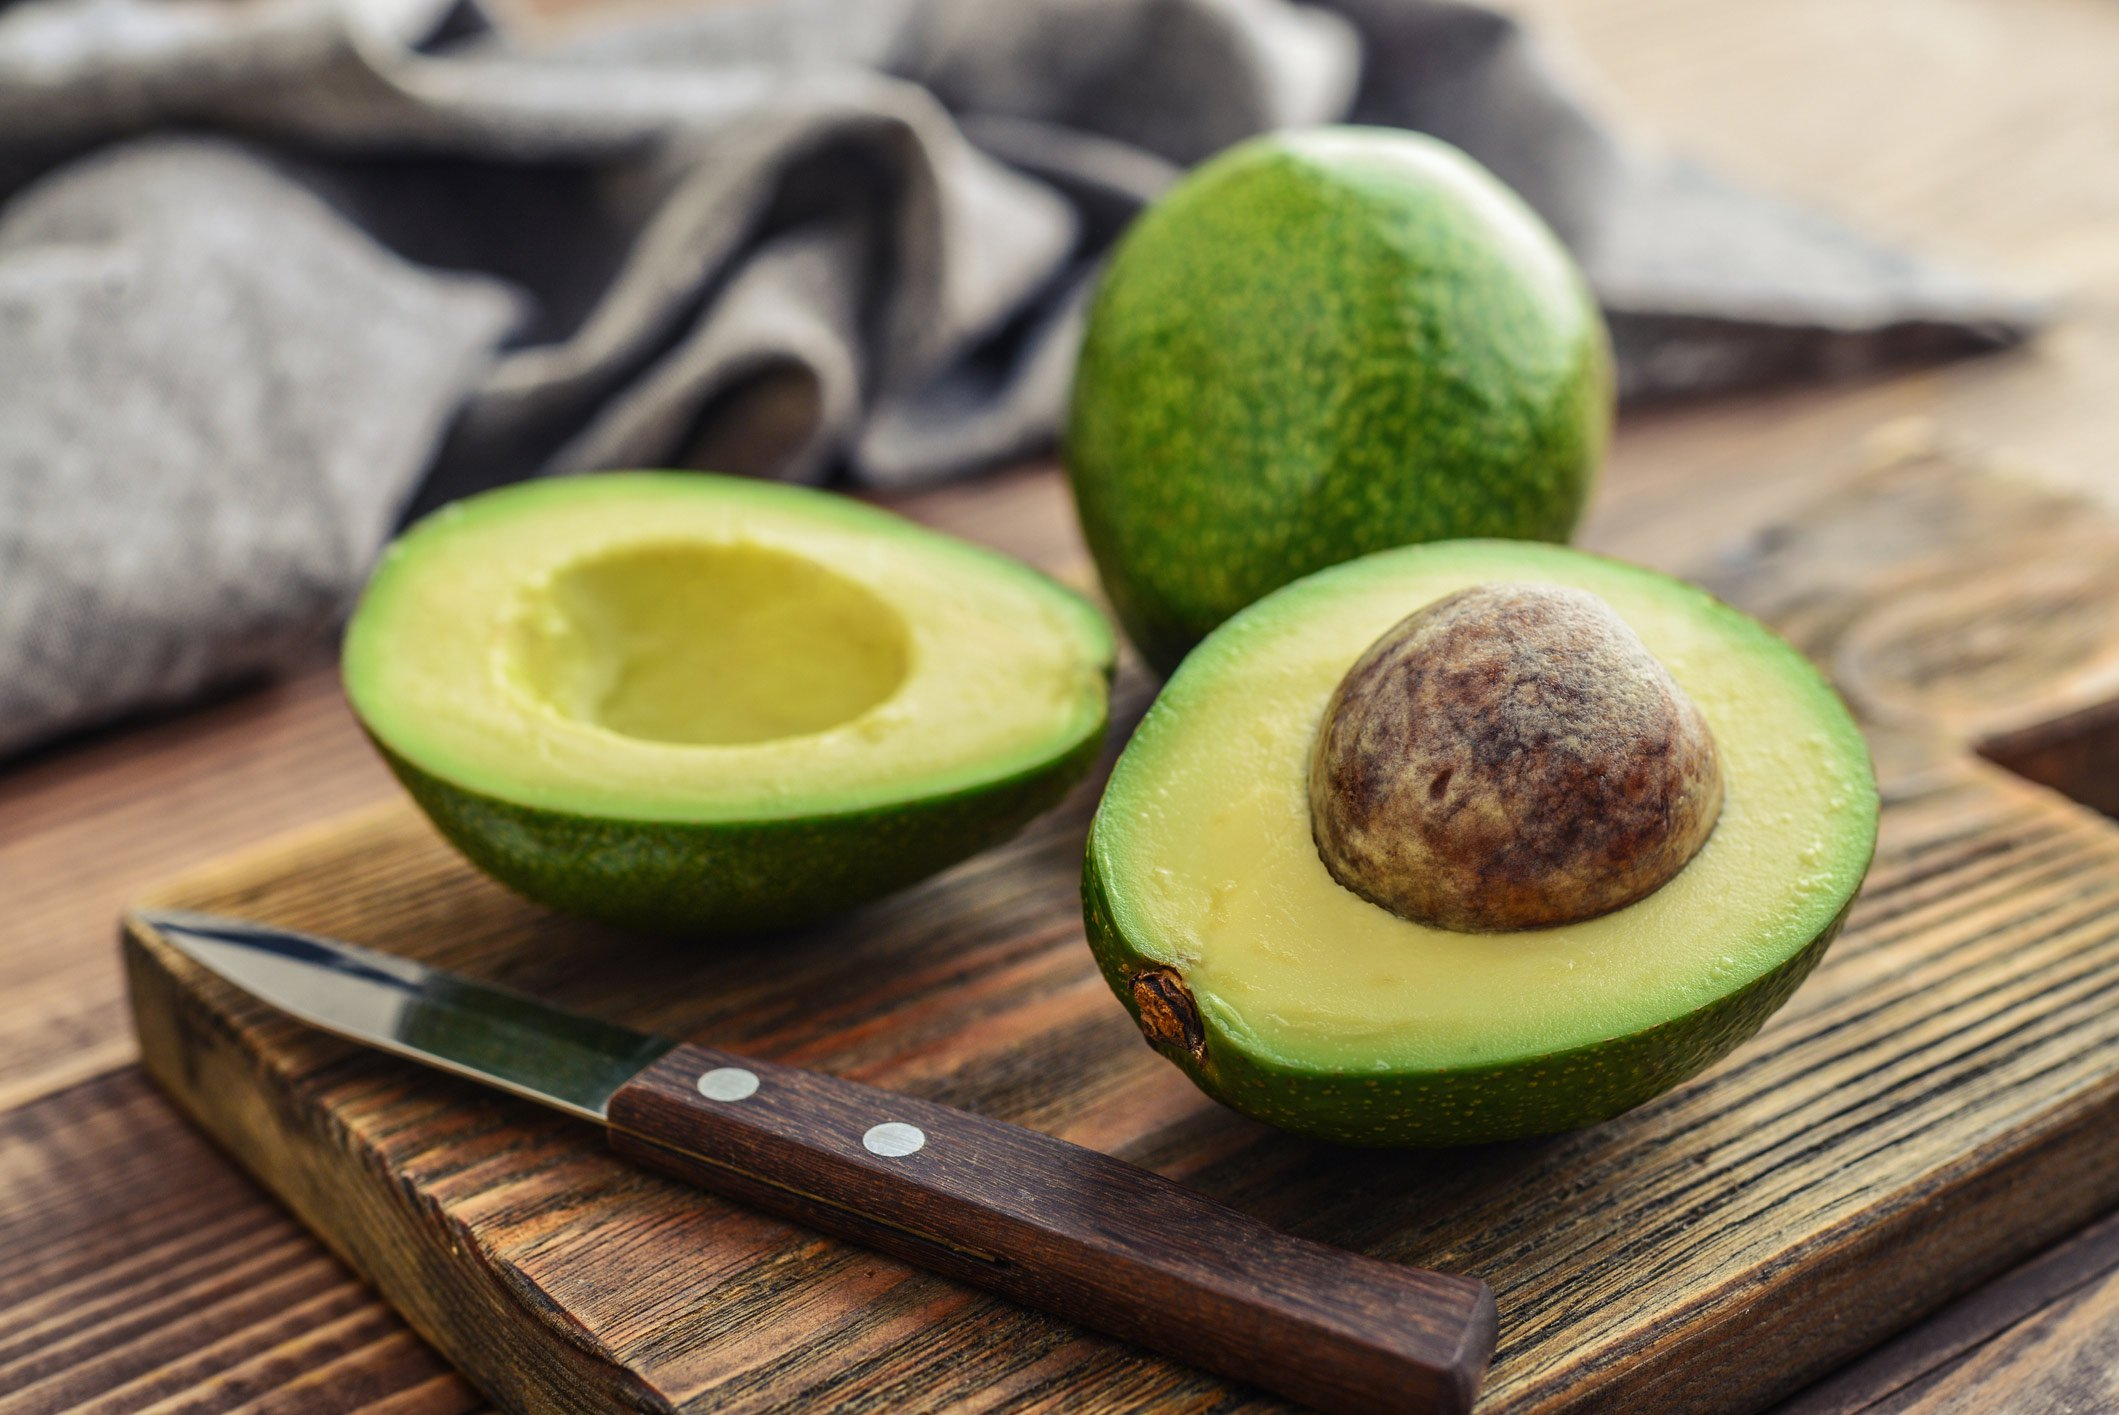 Top detoxifying foods: Avocados